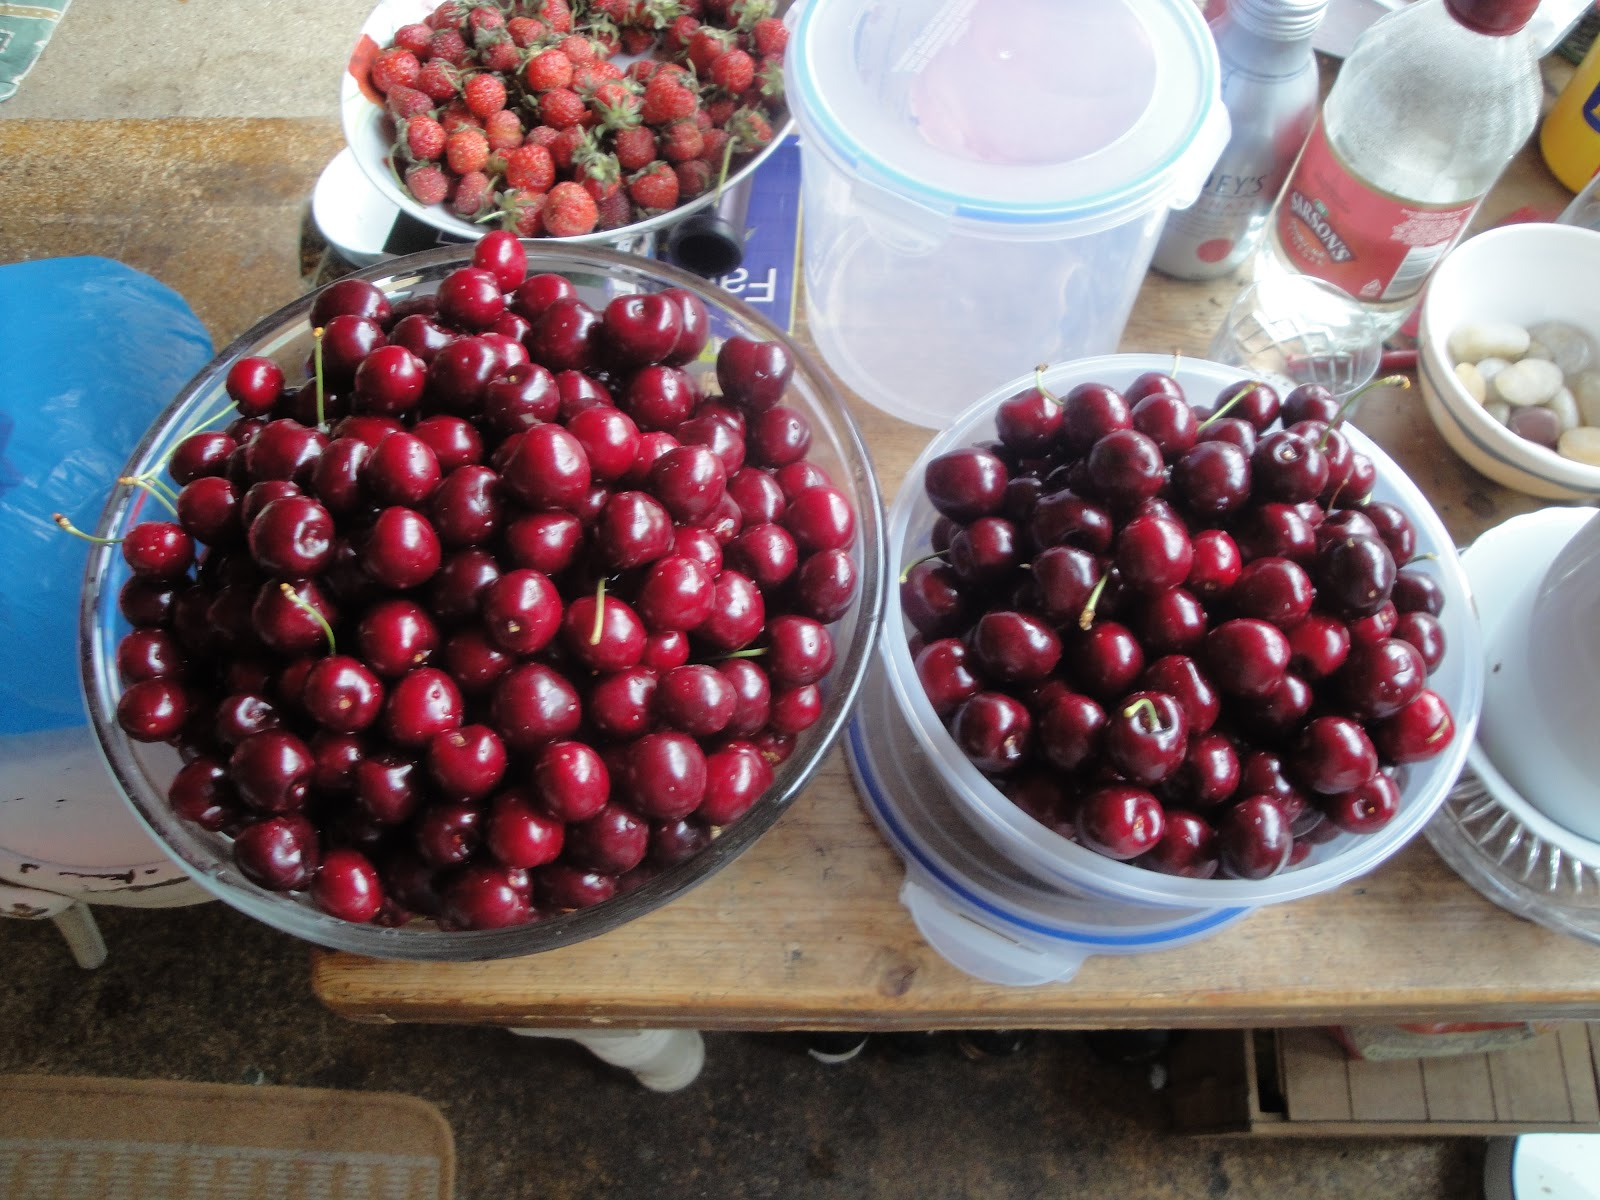 Two large bowls filled to the brim with glistening cherries.